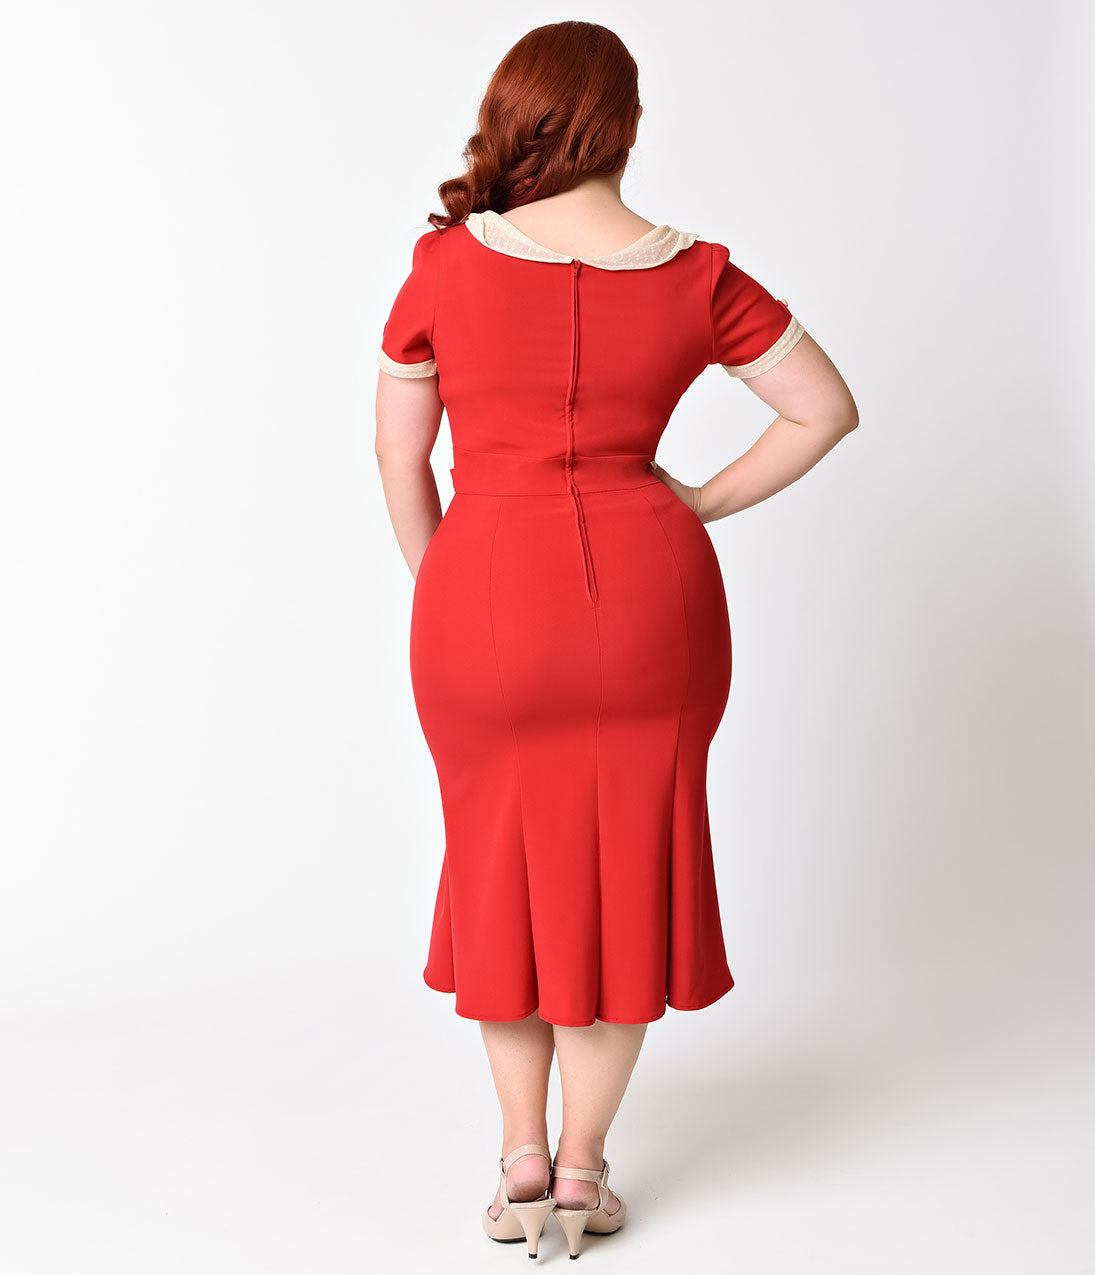 Exclusive_Stop_Staring_Plus_Size_1930s_Style_Red_Ivory_Railene_Dress_2_2048x2048.jpg (1095×1275)